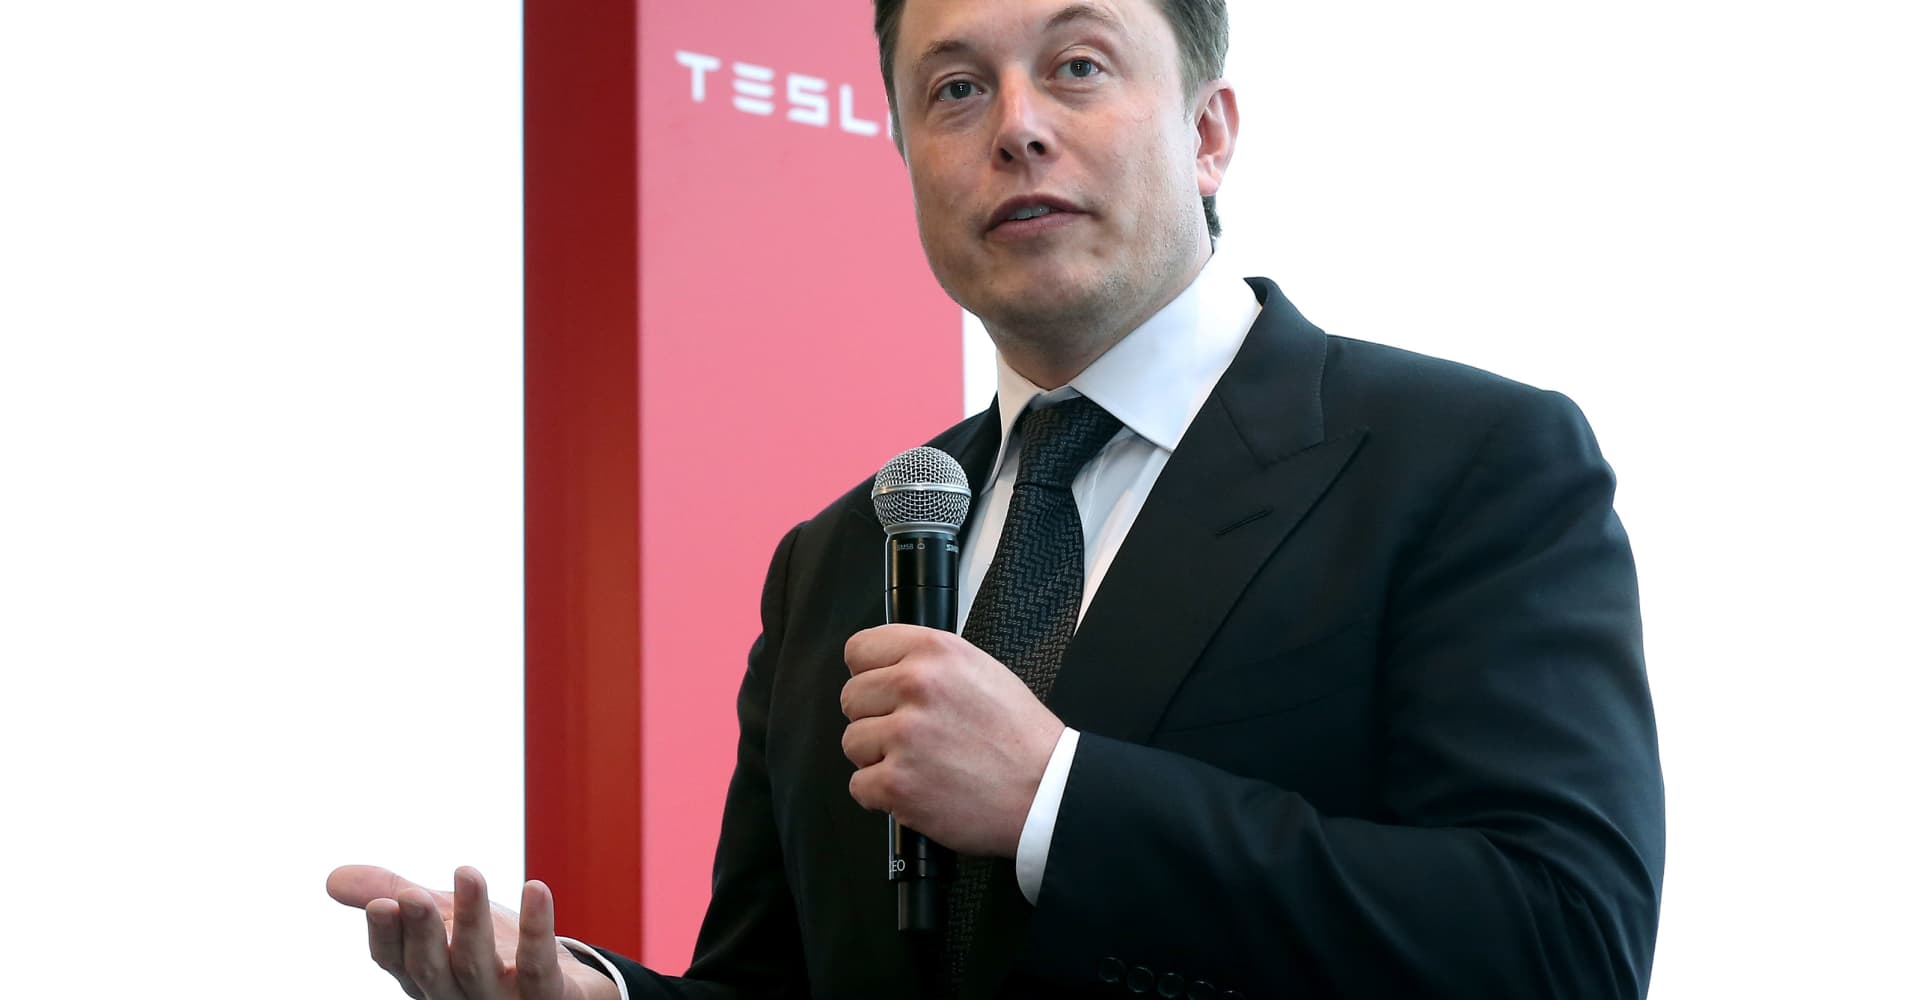 Elon Musk says he's working with Goldman Sachs and Silver Lake on taking Tesla private